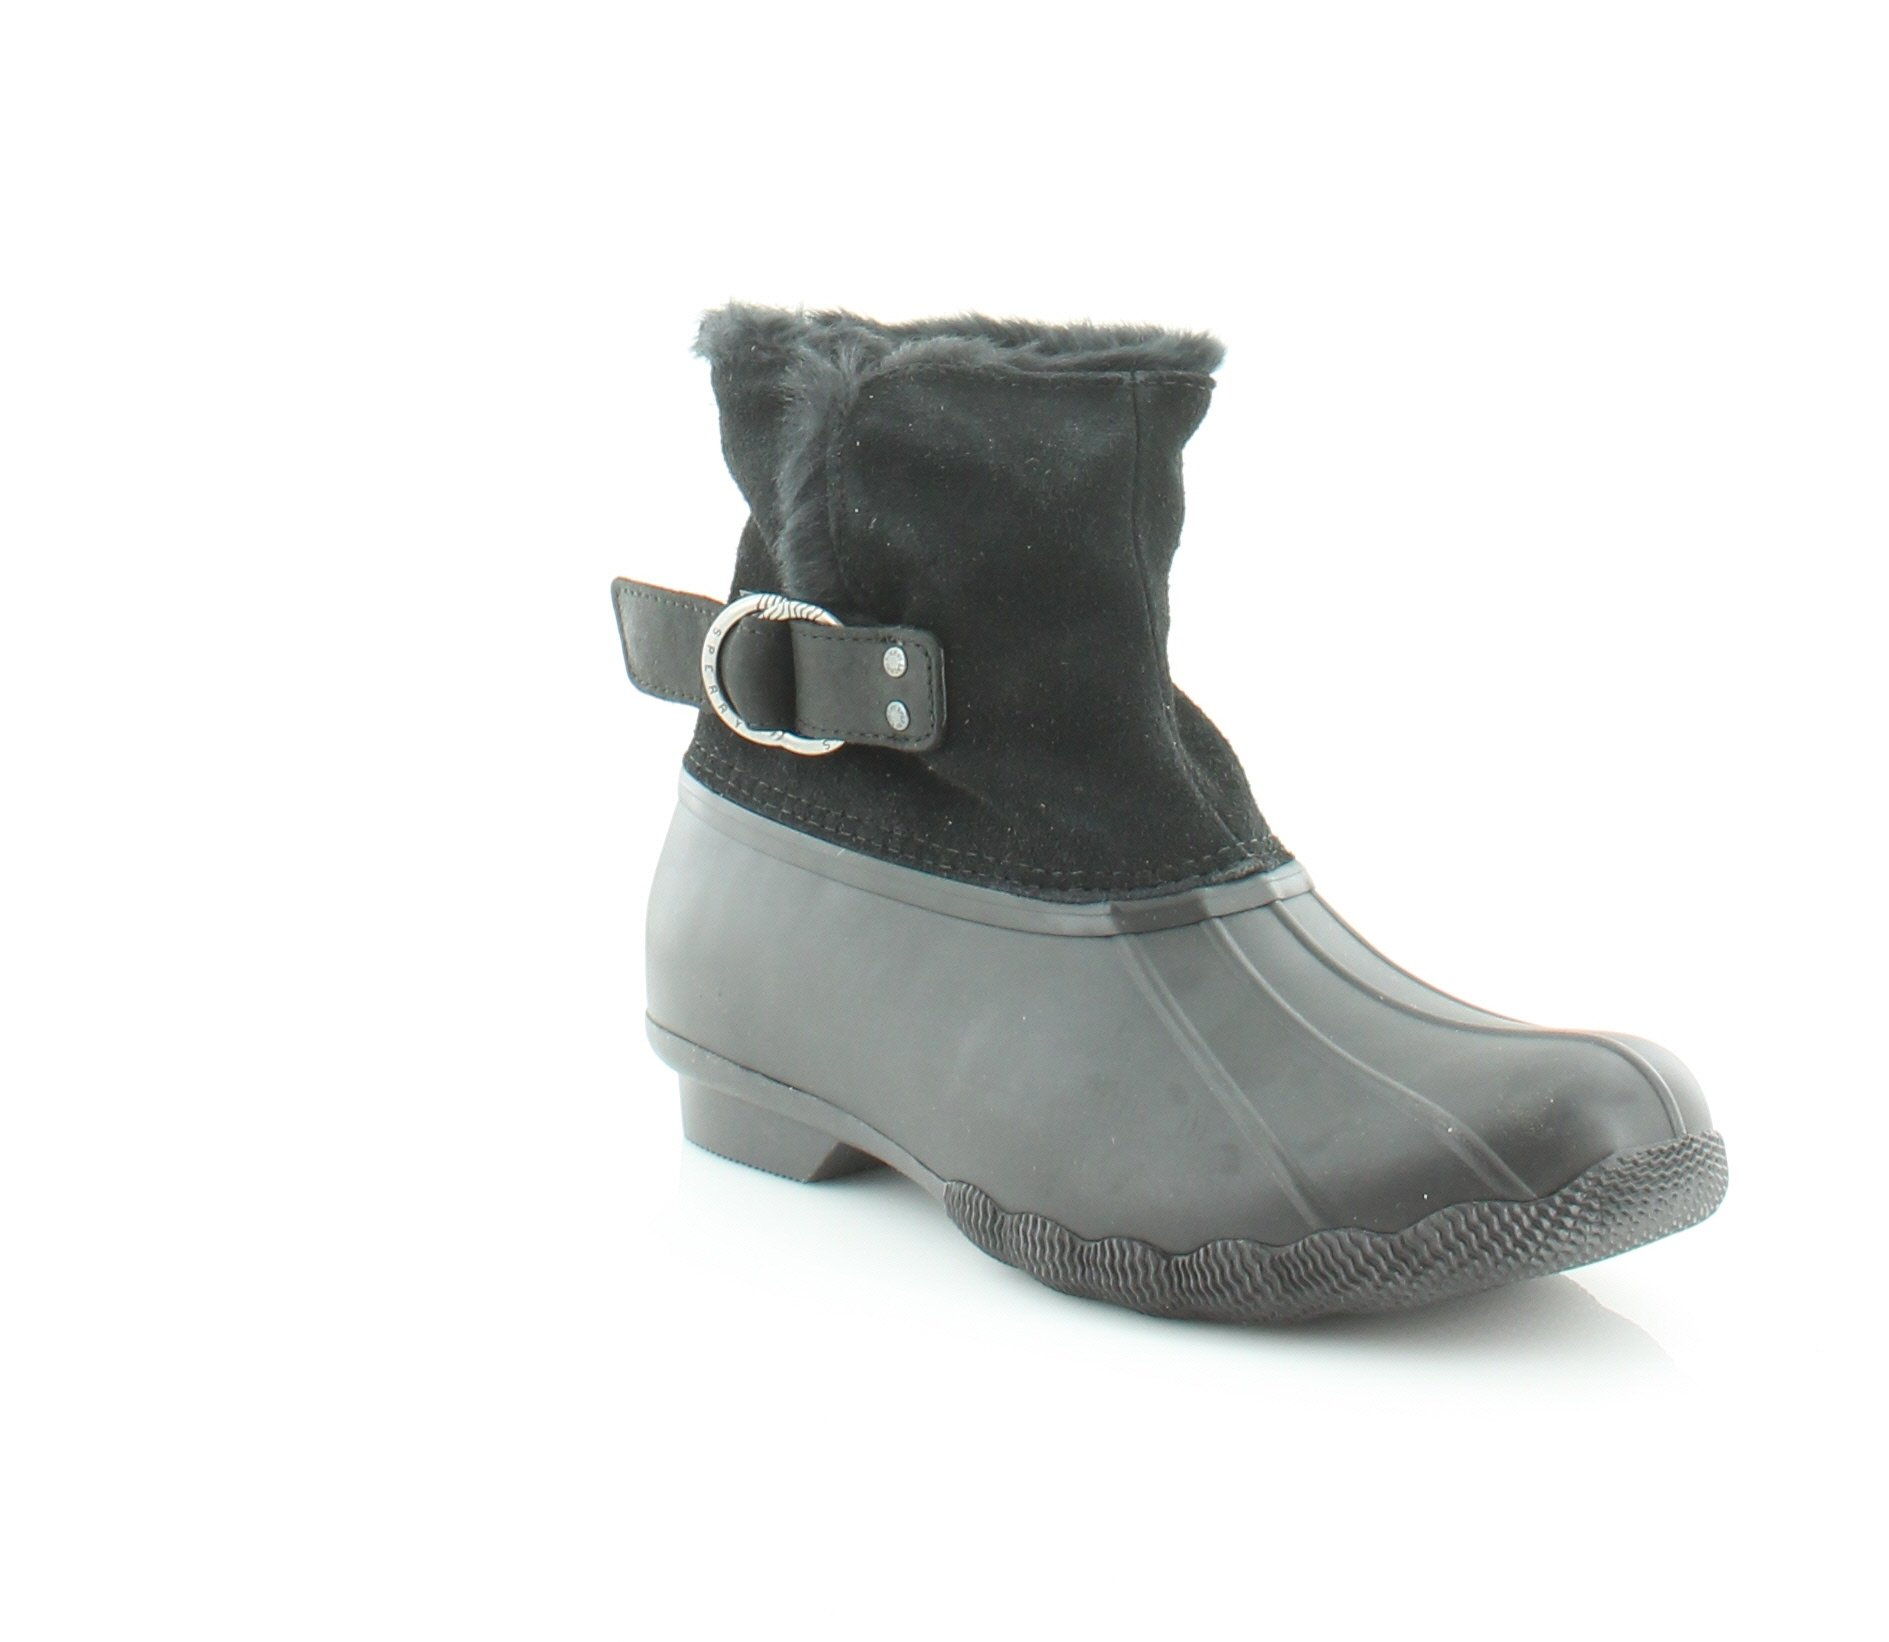 Sperry Top-Sider Saltwater Ivy Women's Boots Black Size 7.5 M